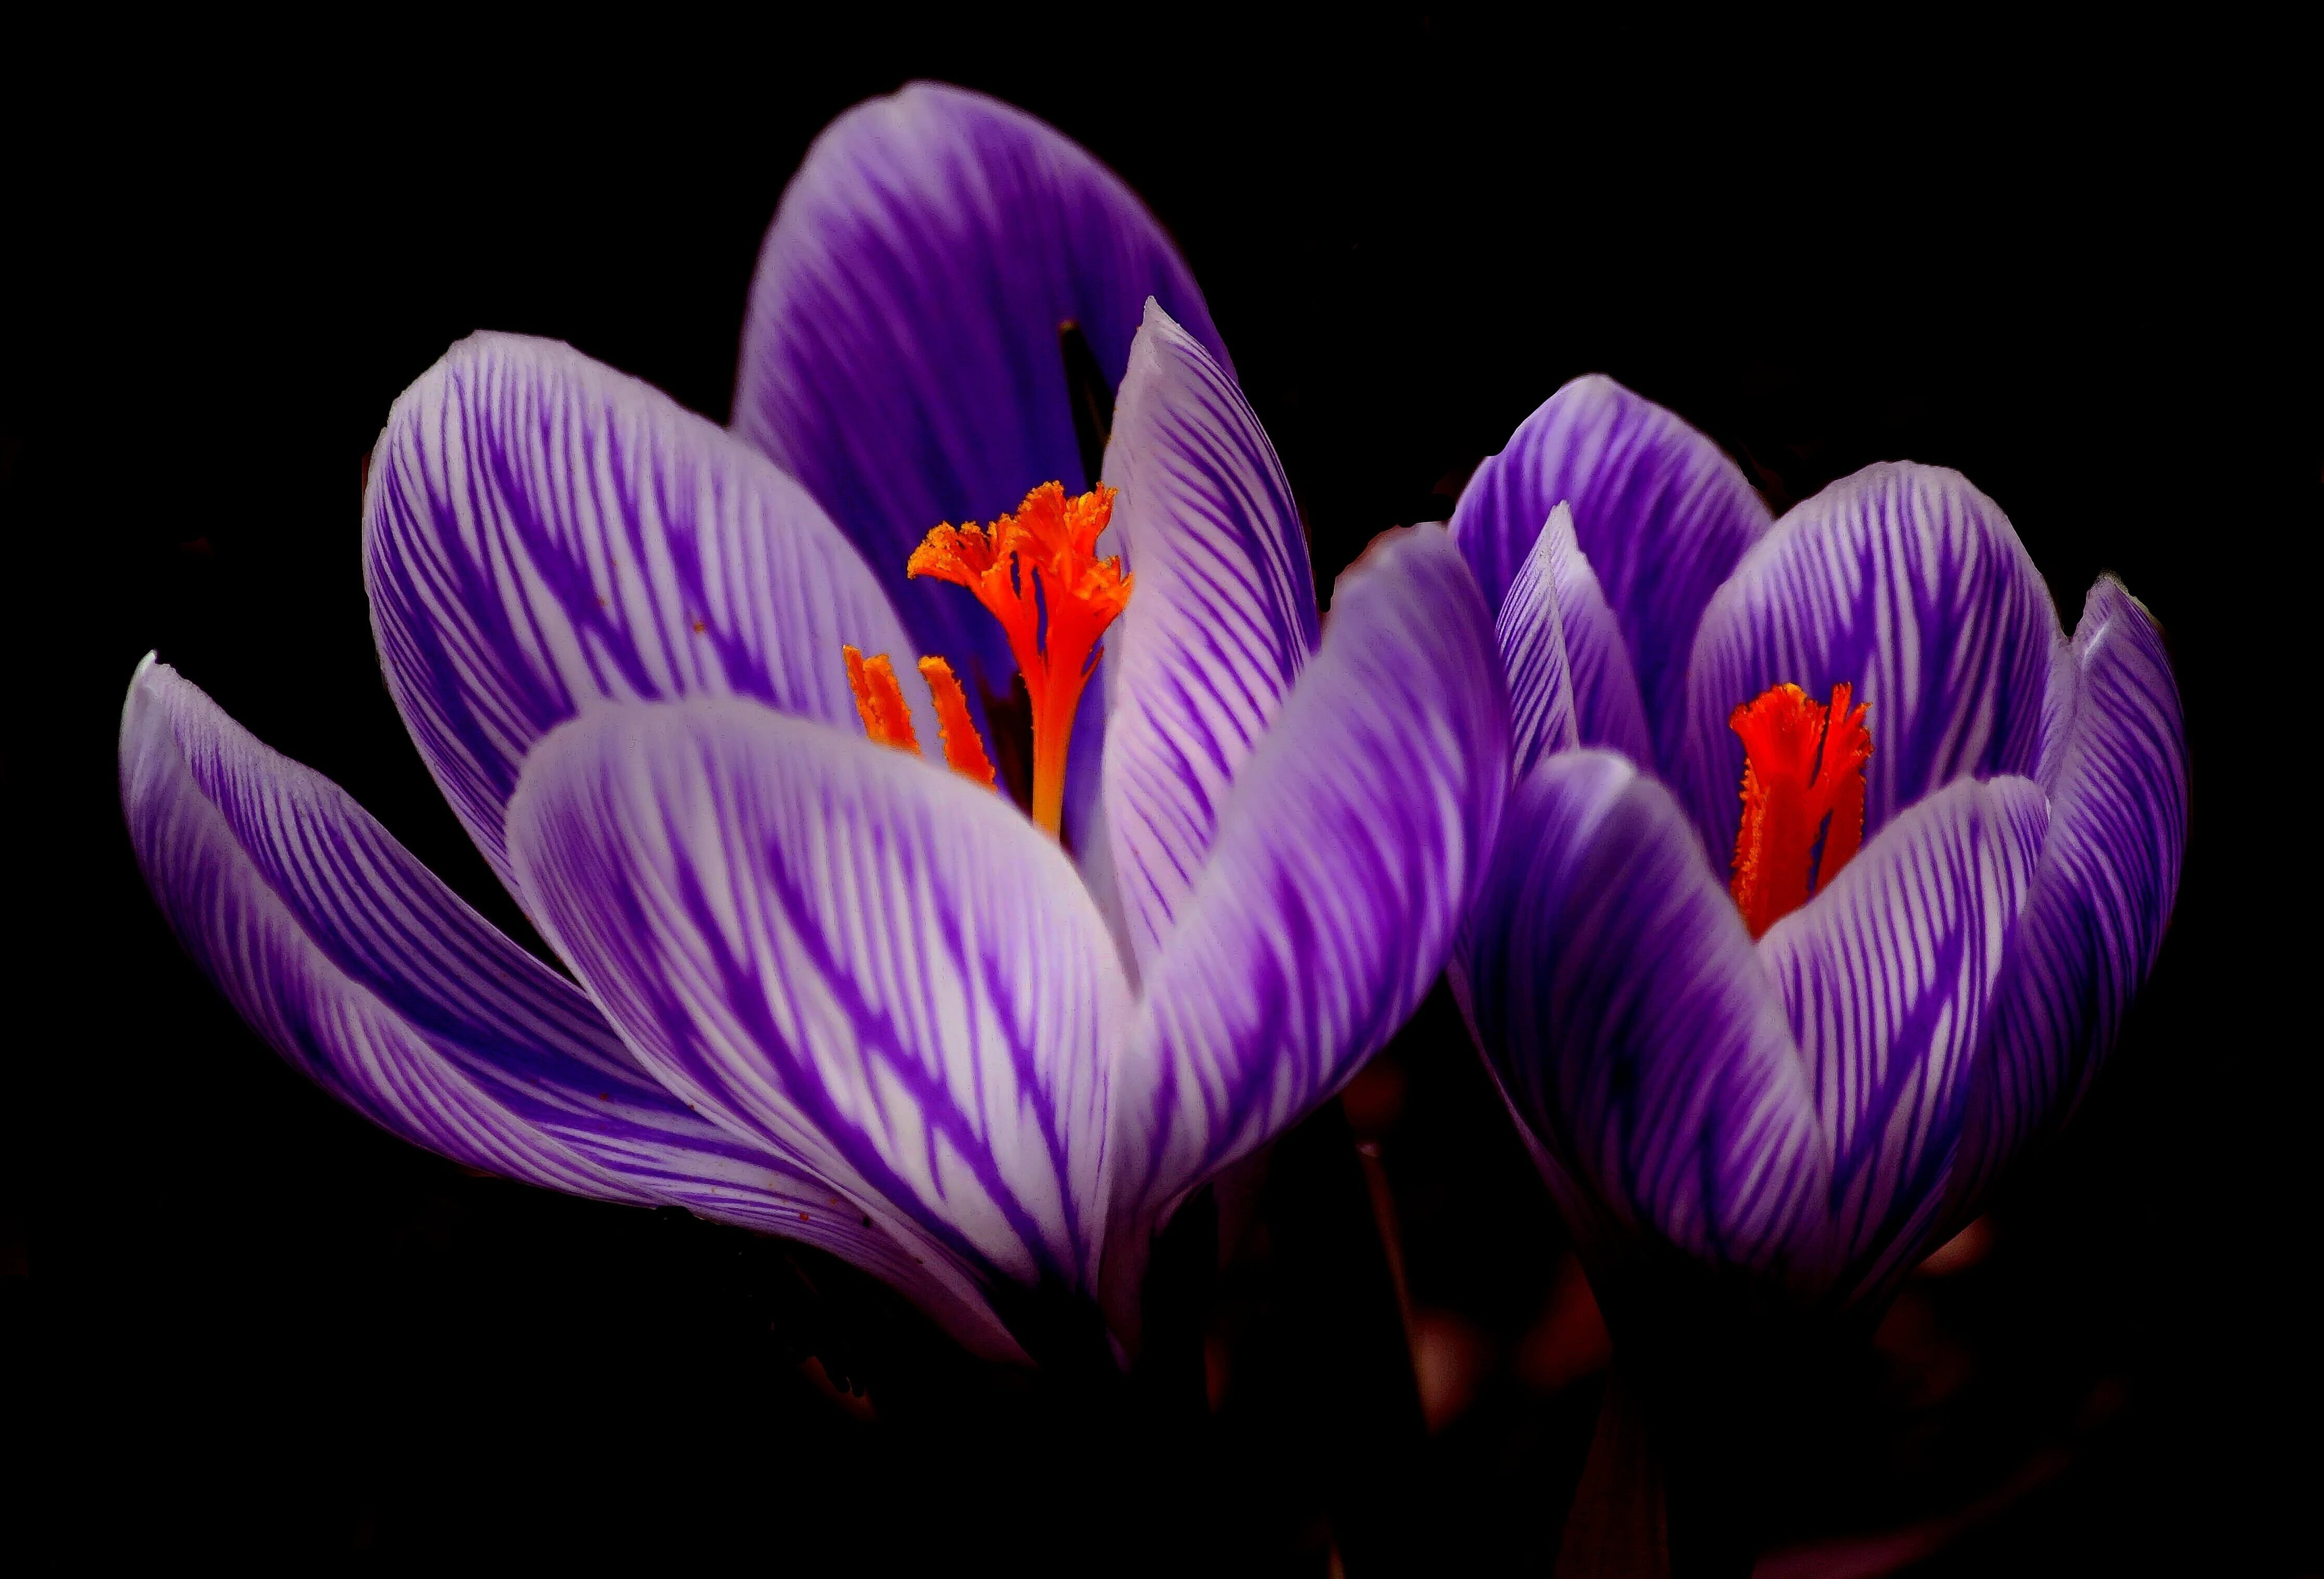 Purple Petal Flowers in Black Background